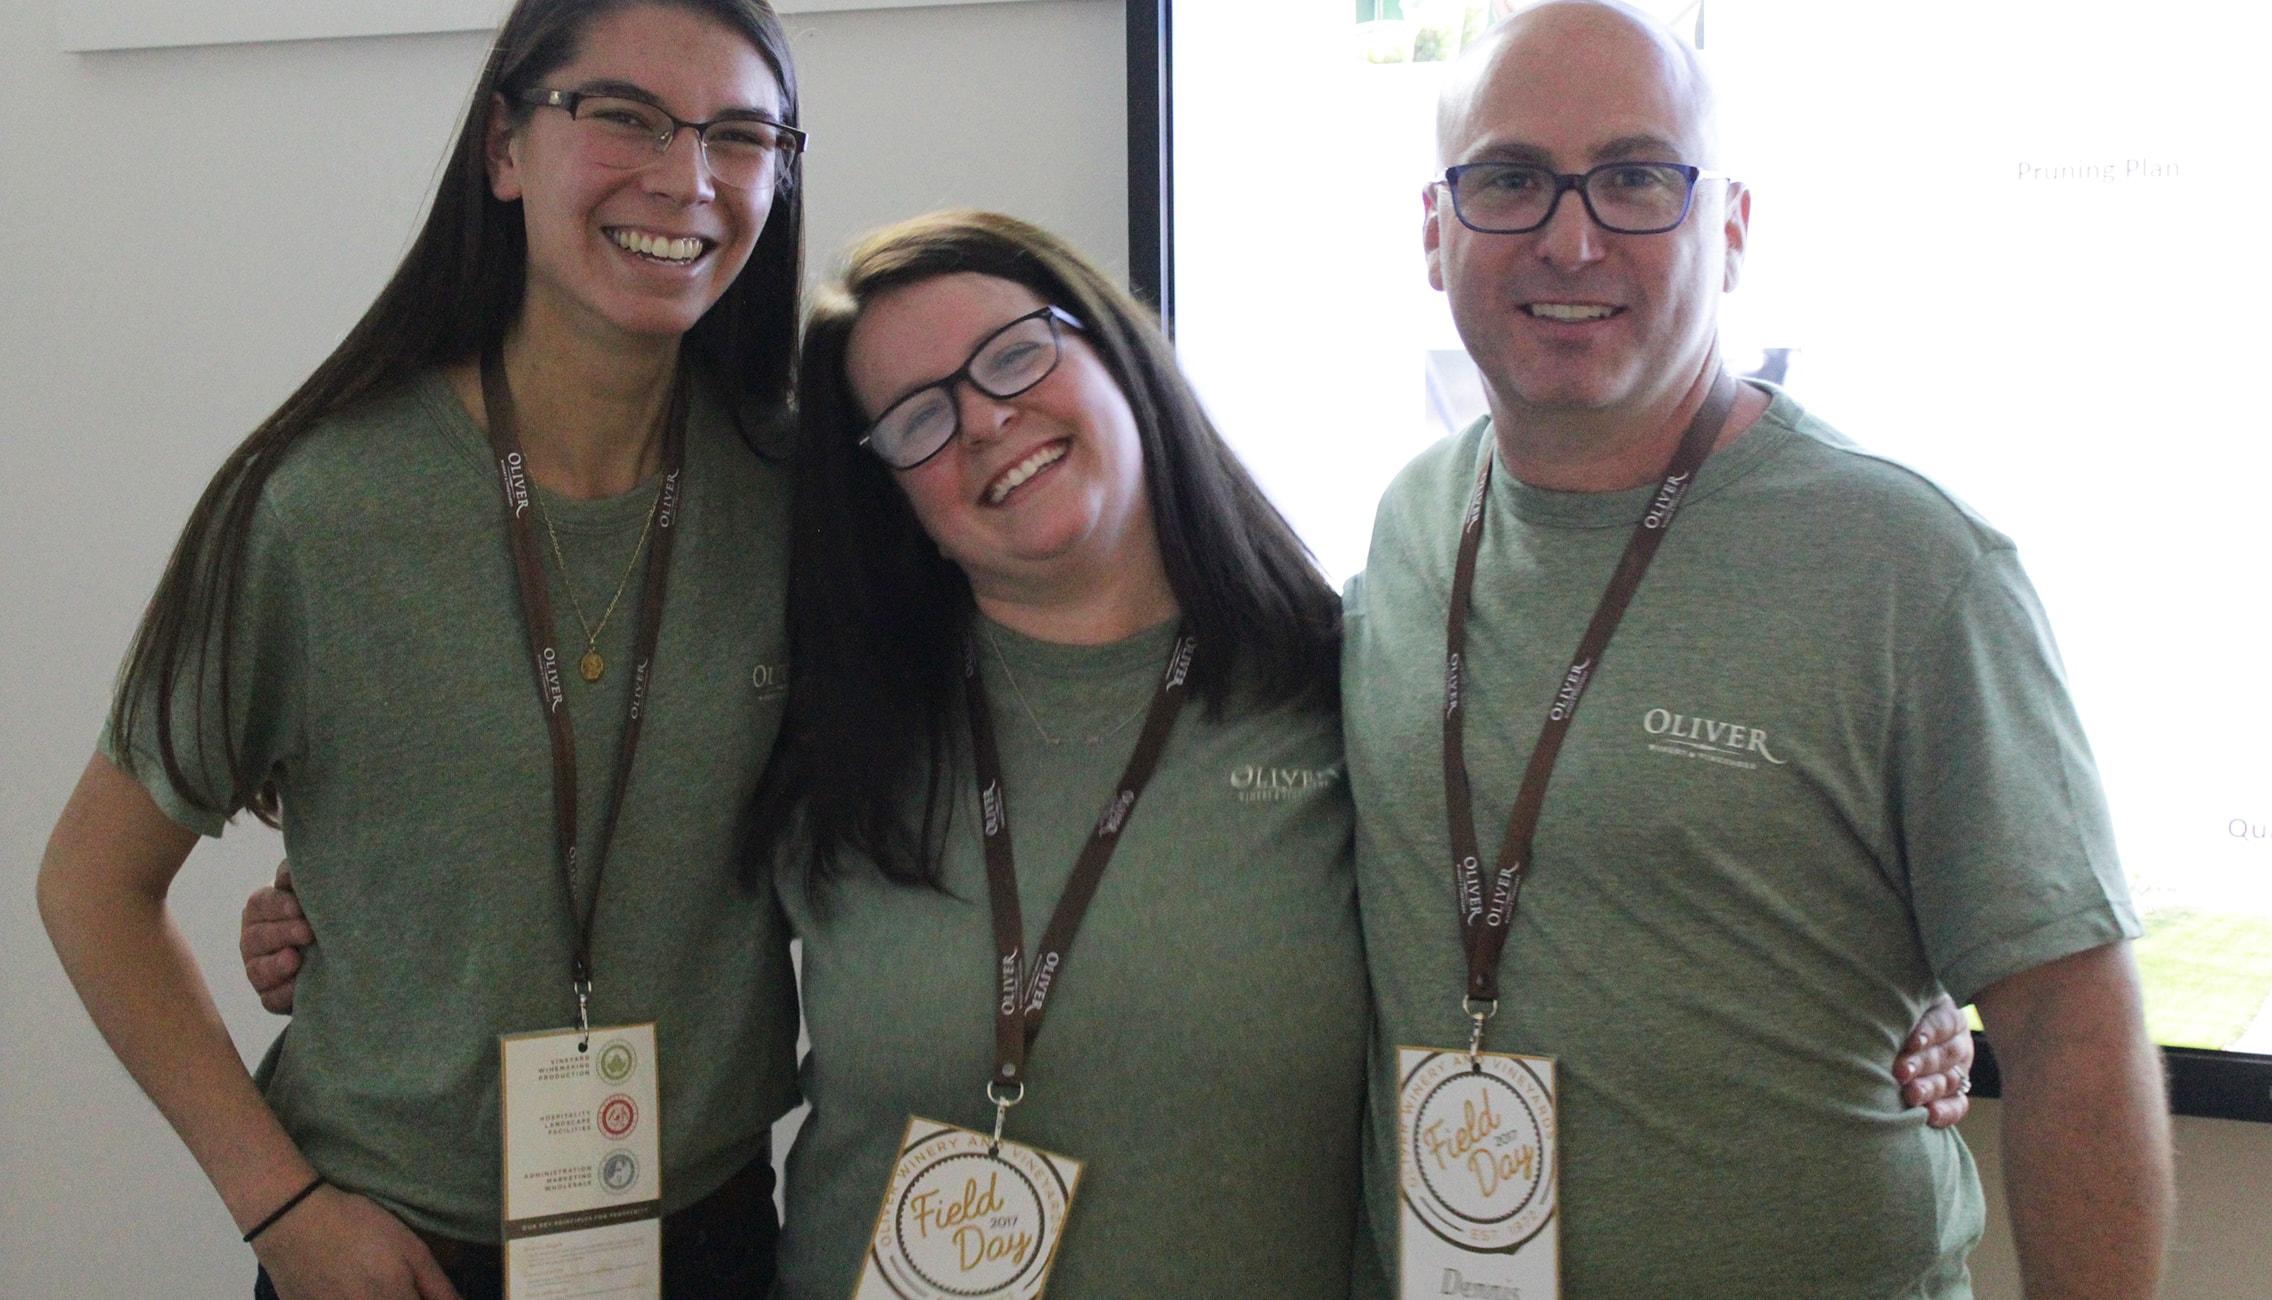 Three employees pose for a picture wearing Oliver Winery Field Day T-shirts and nametags.